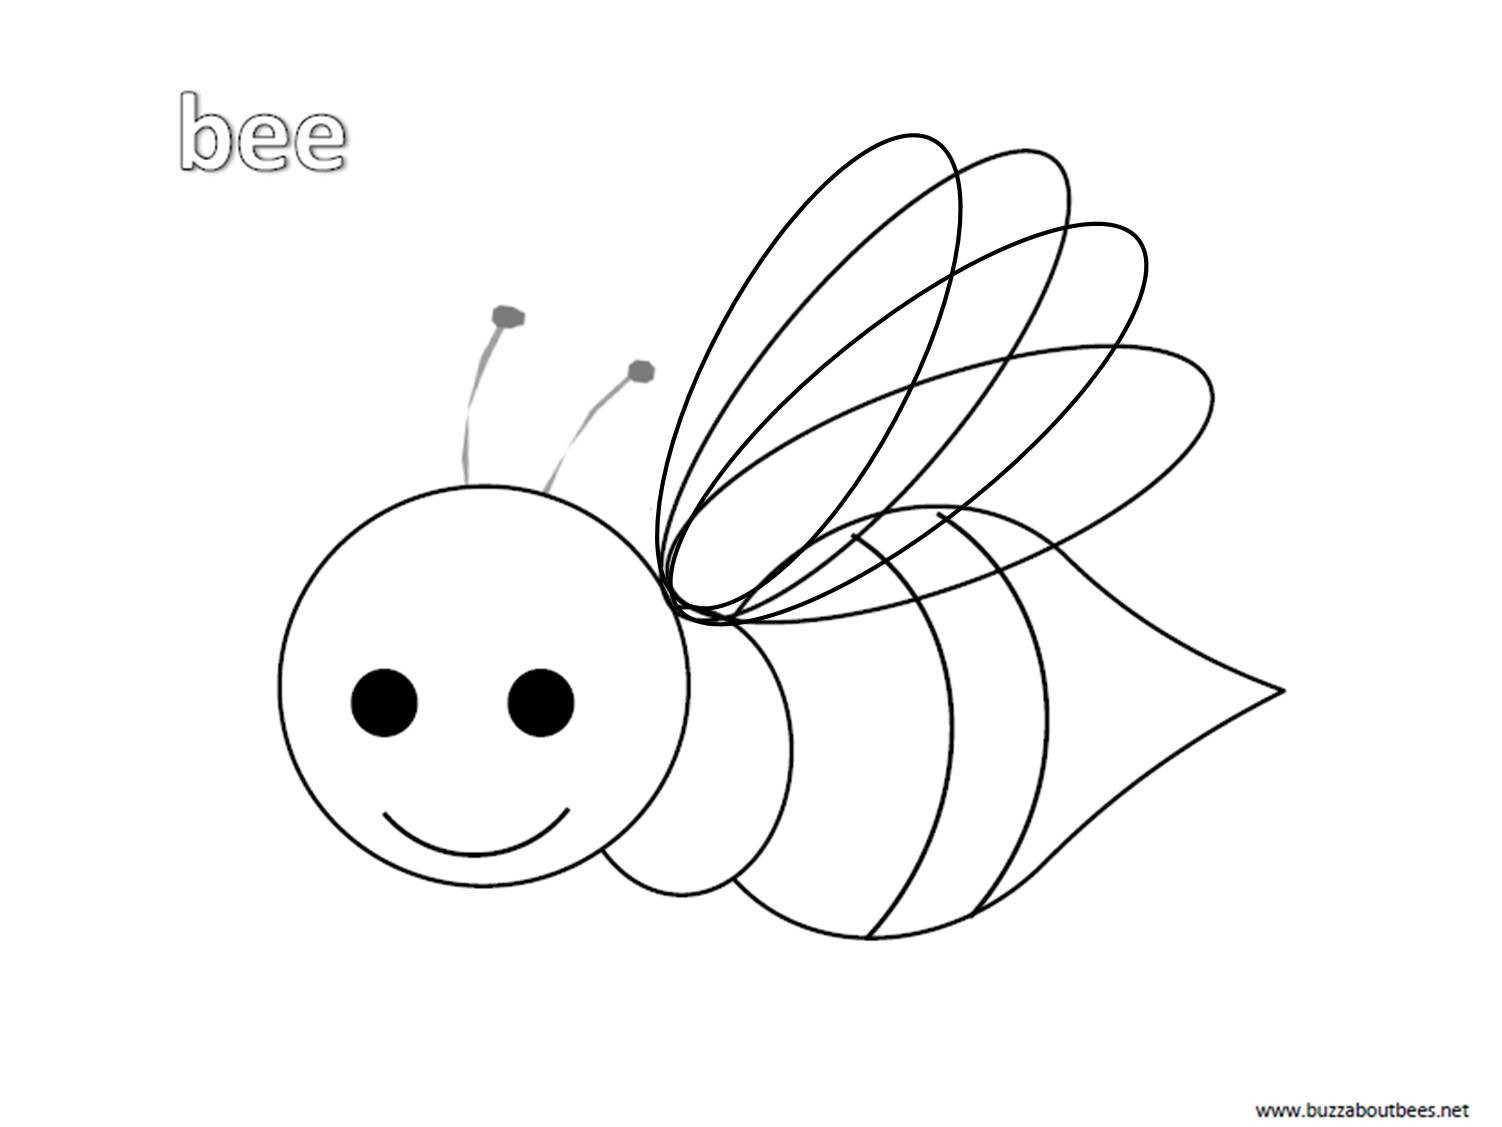 Best ideas about Honey Bee Coloring Pages For Kids . Save or Pin Bee Coloring Pages Educational Activity sheets And Now.